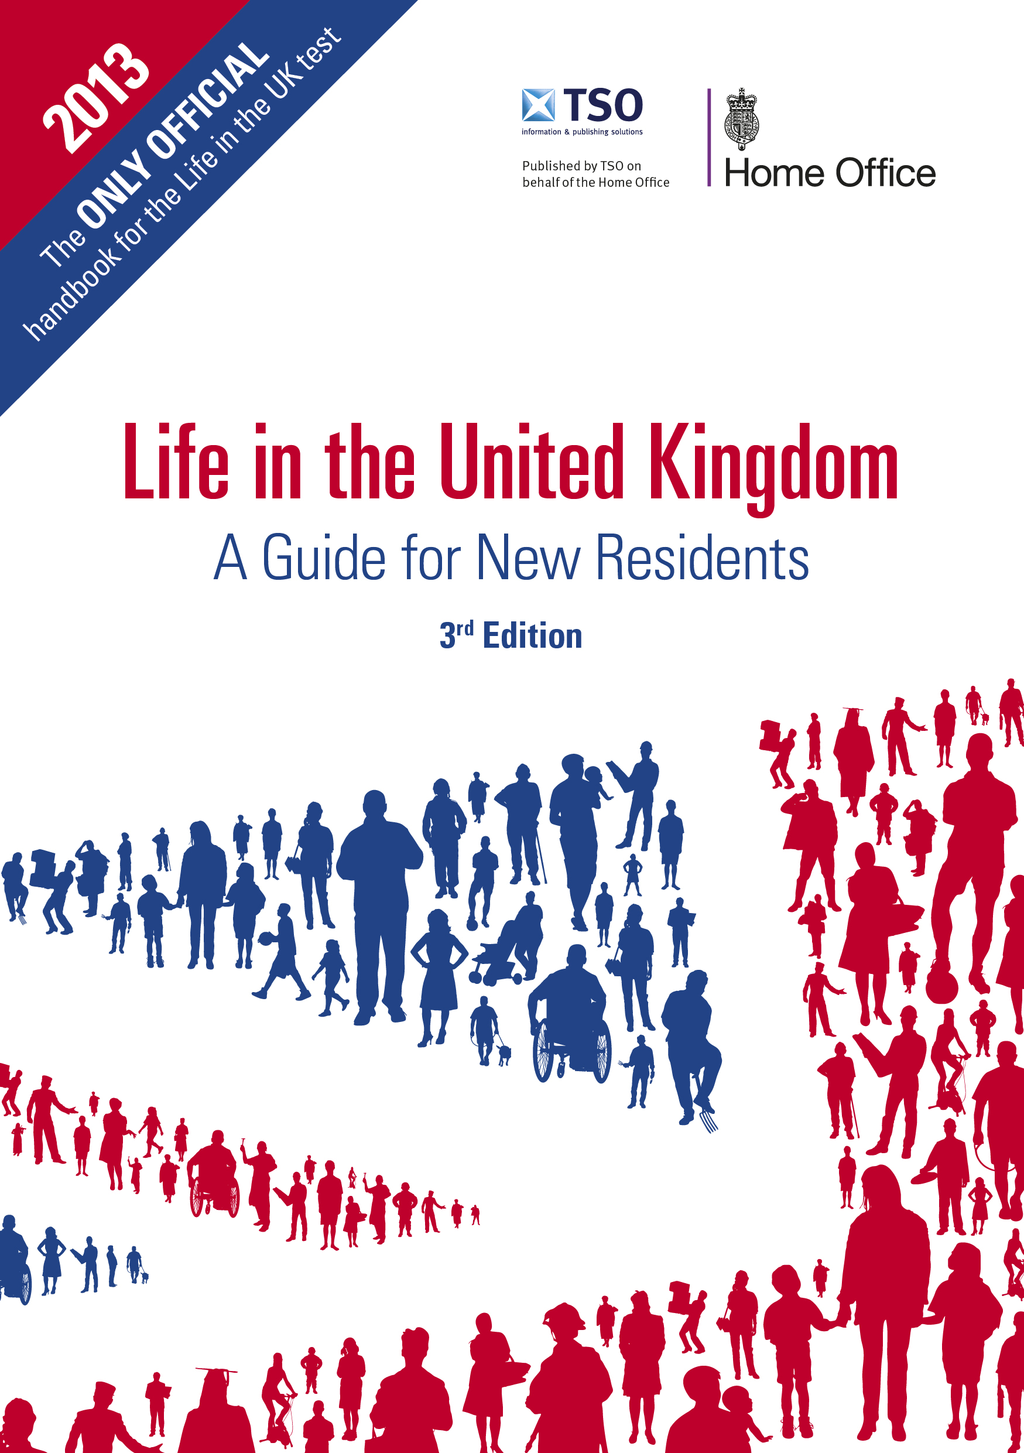 Life in the United Kingdom A Guide for New Residents,  3rd Edition